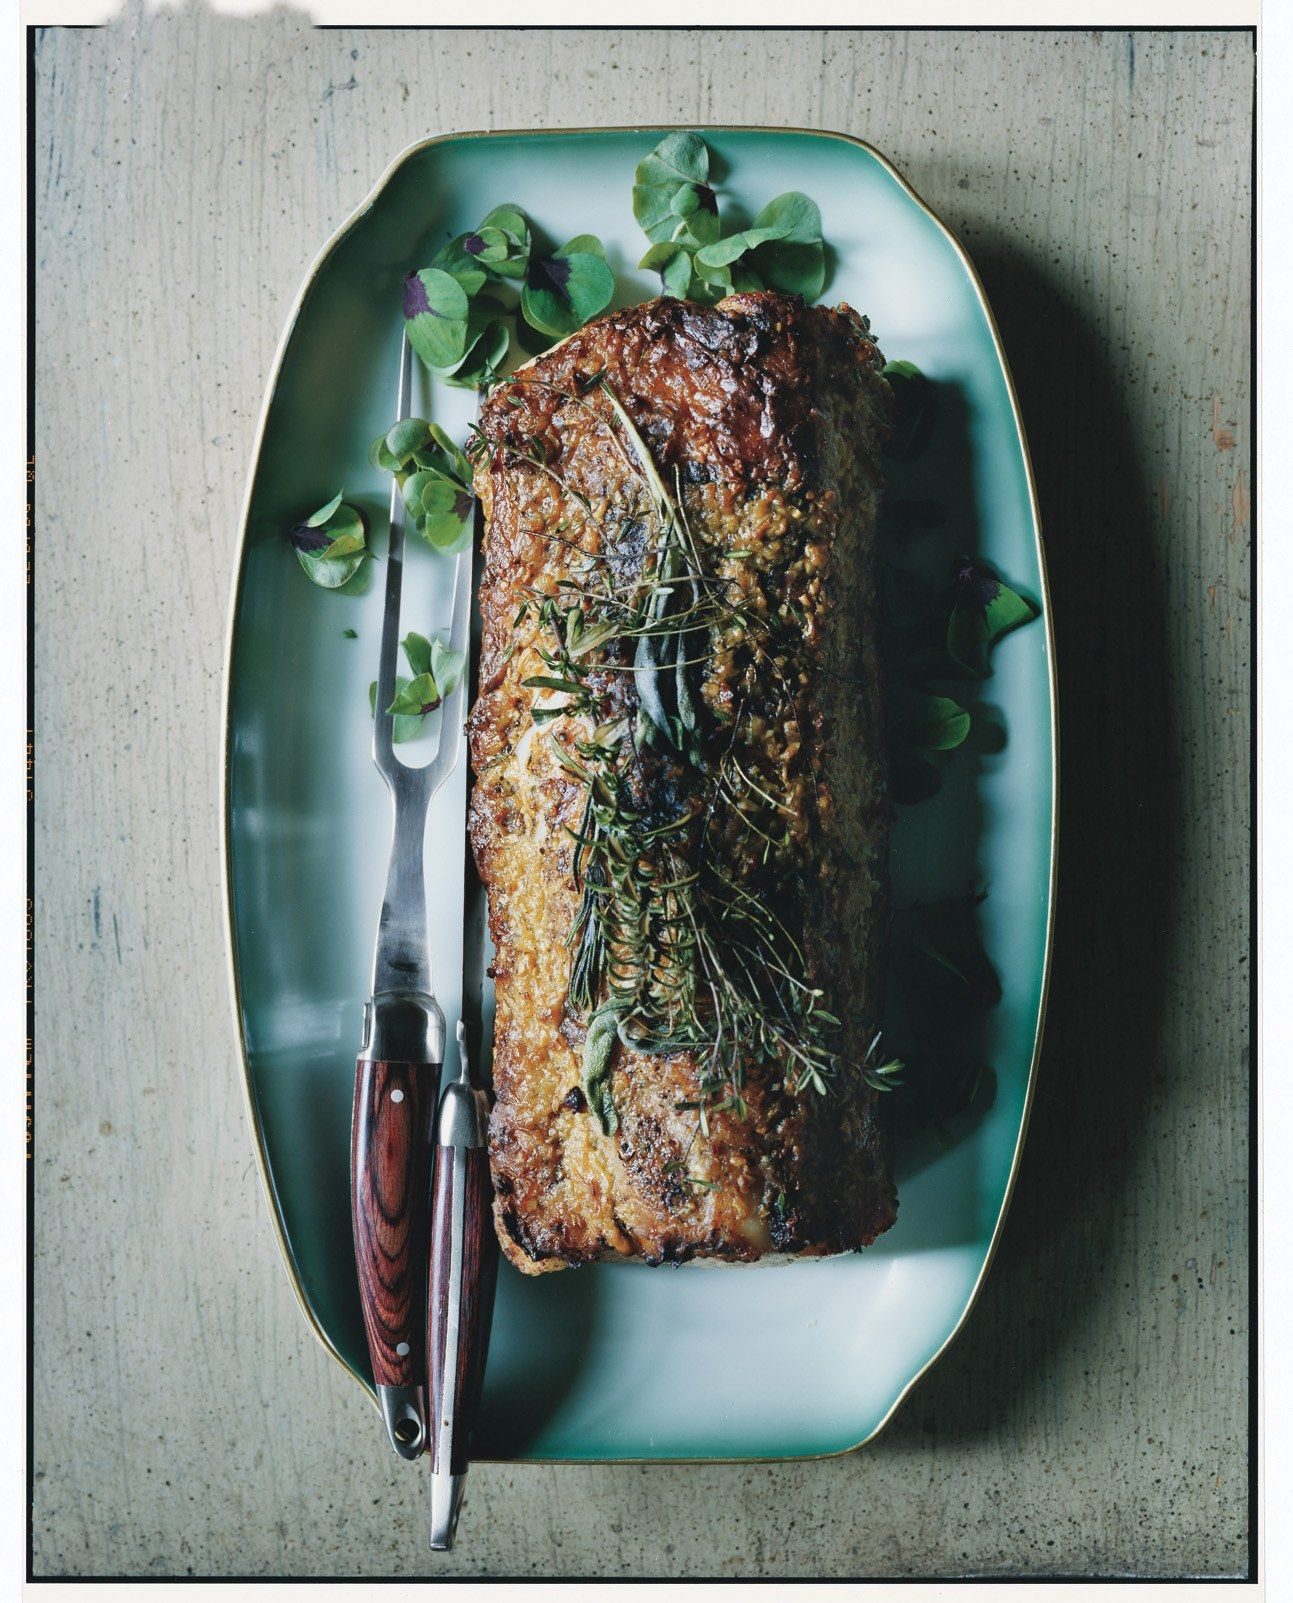 Roast Pork Loin With Garlic And Rosemary